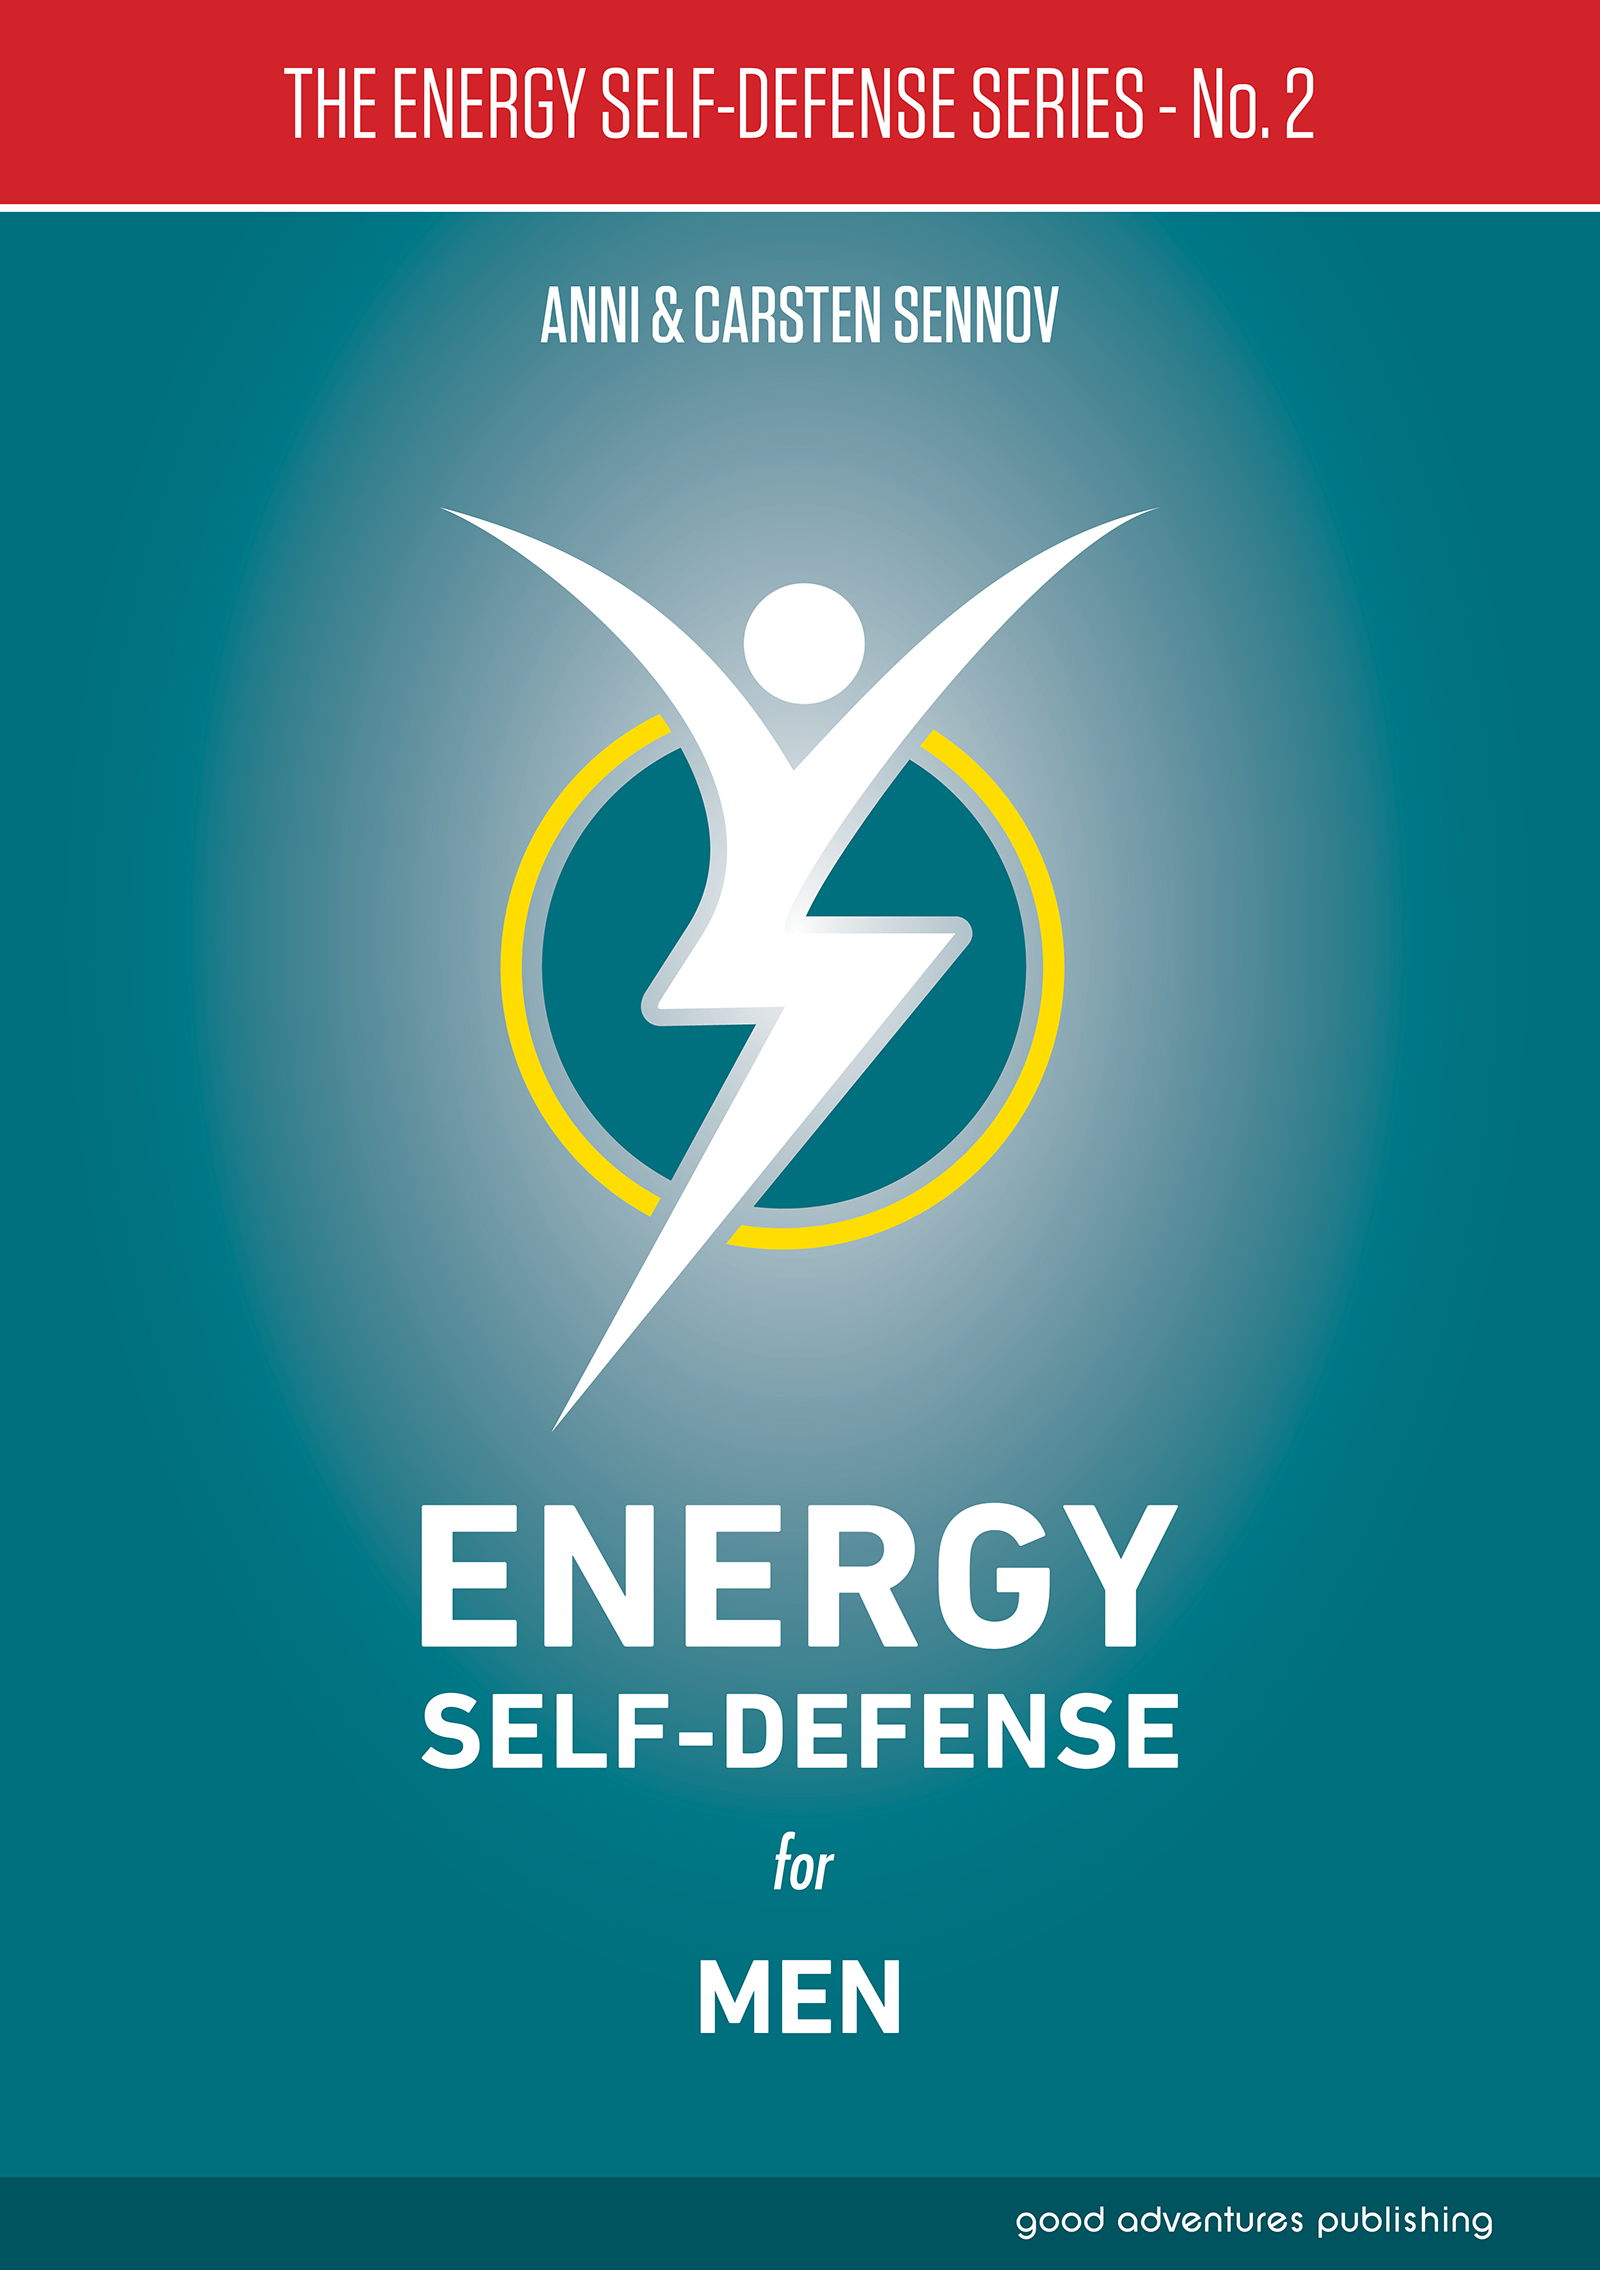 Energy Self-Defense for Men